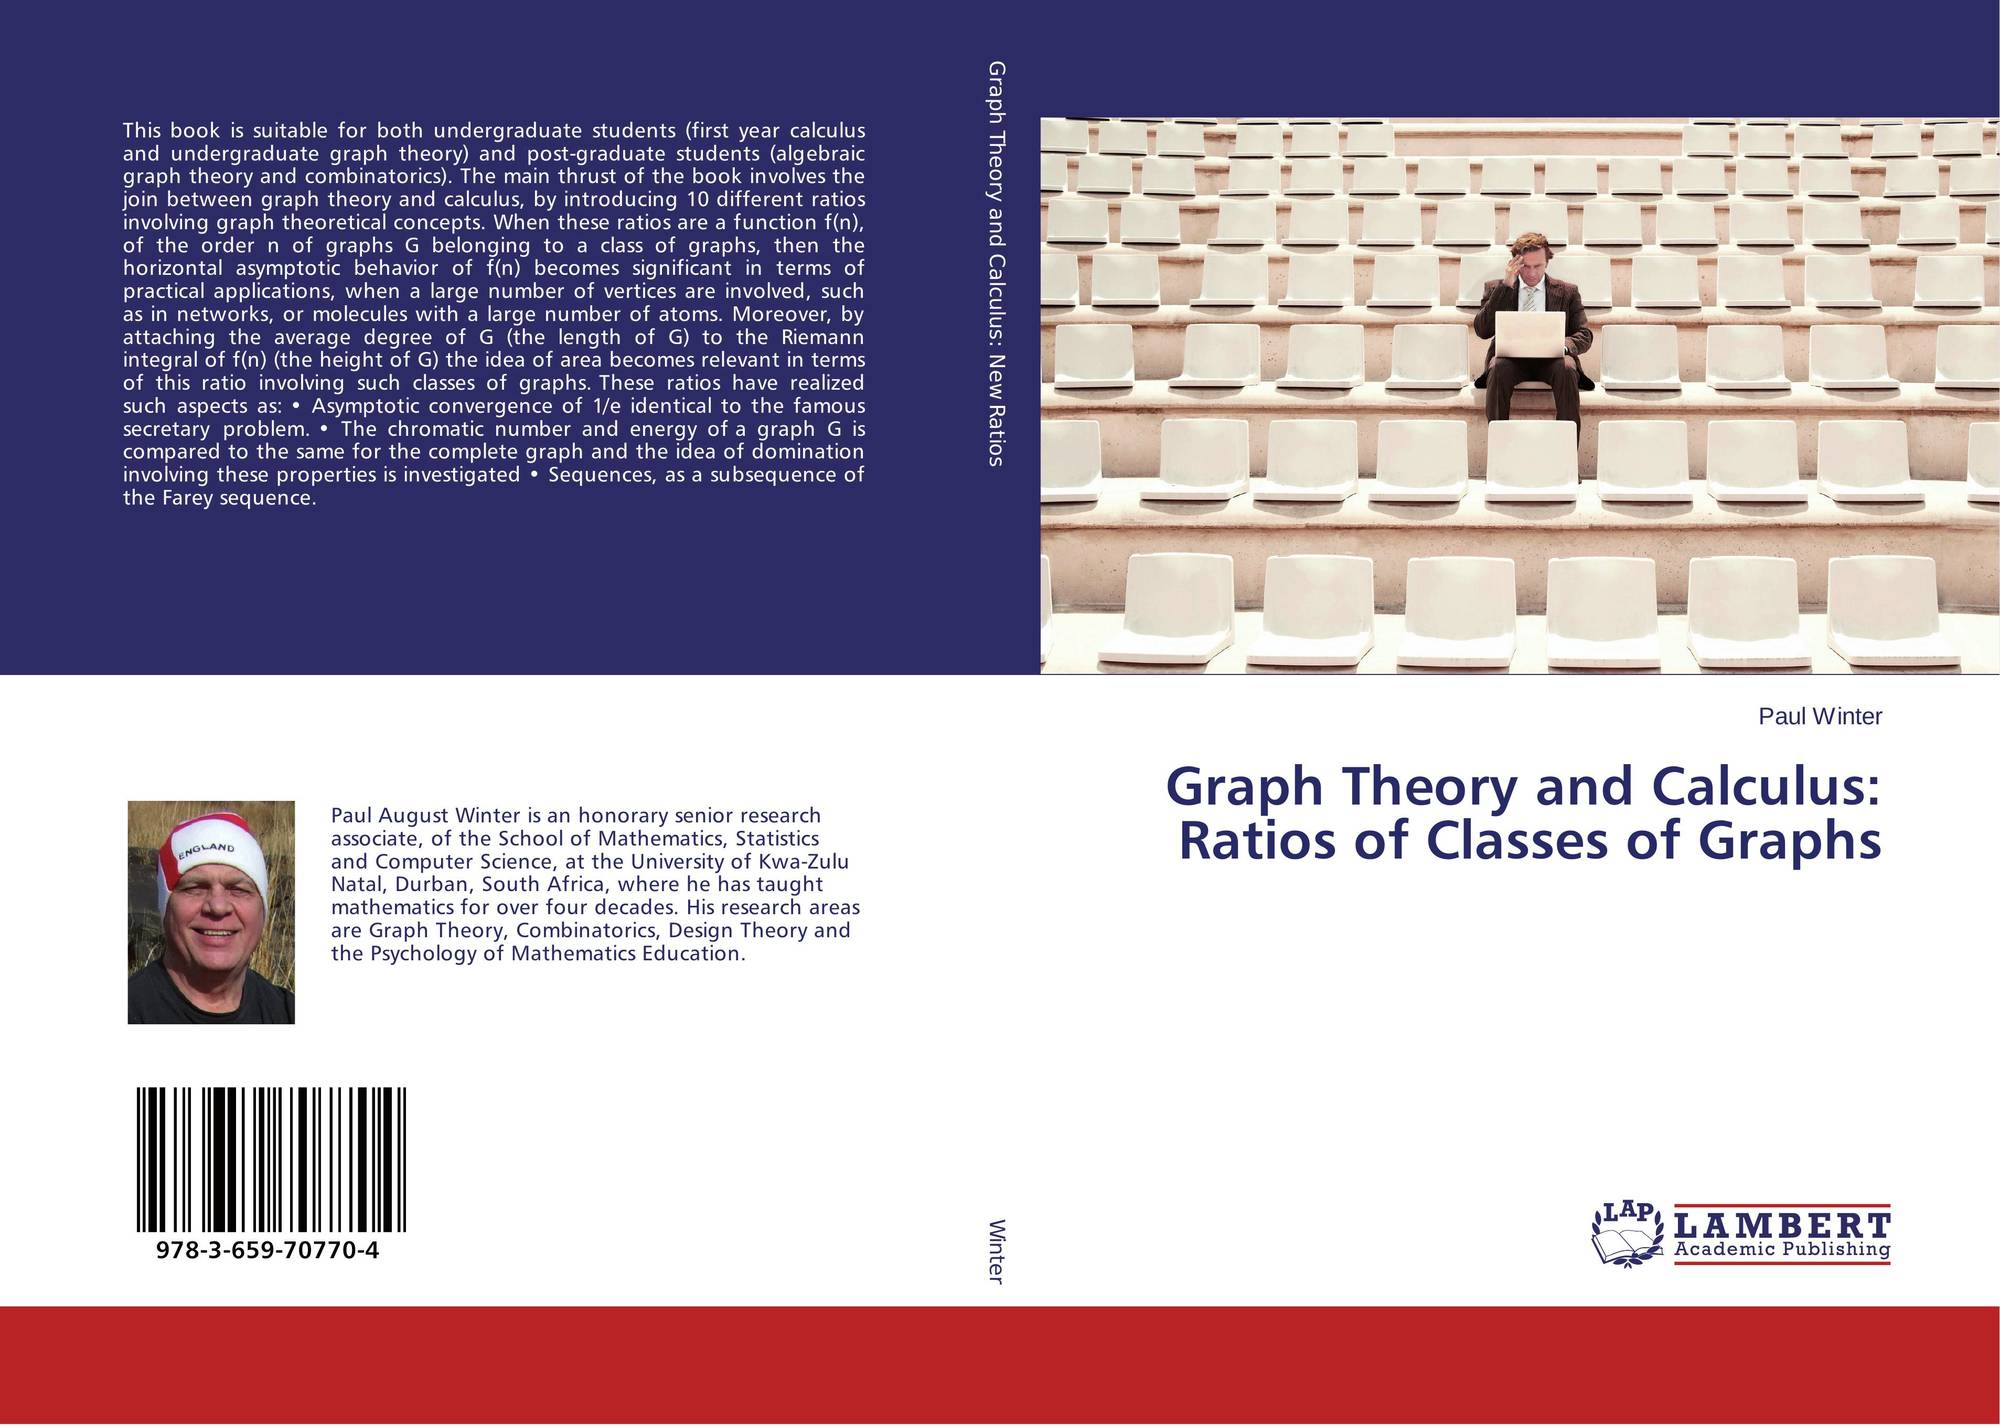 thesis on algebraic graph theory In graph theory, as in discrete mathematics in general, not only the existence, but   this thesis consists of six chapters and one appendix, where  for a direct  and more algebraic proof, see [139, proof of theorem 5.